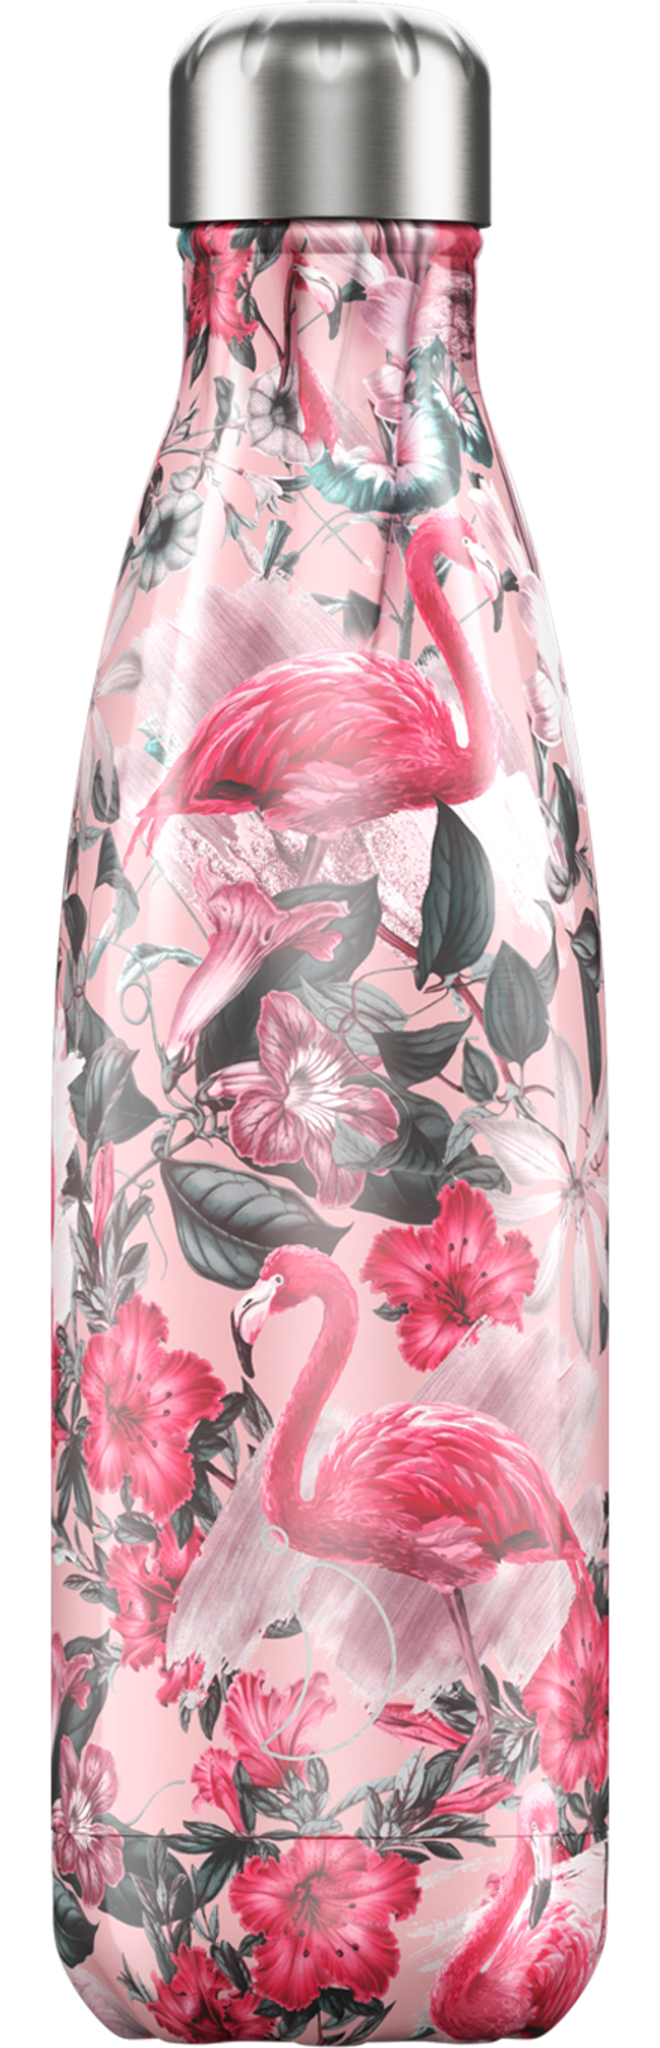 Chilly's Bottle Tropical Flamingo 750ml